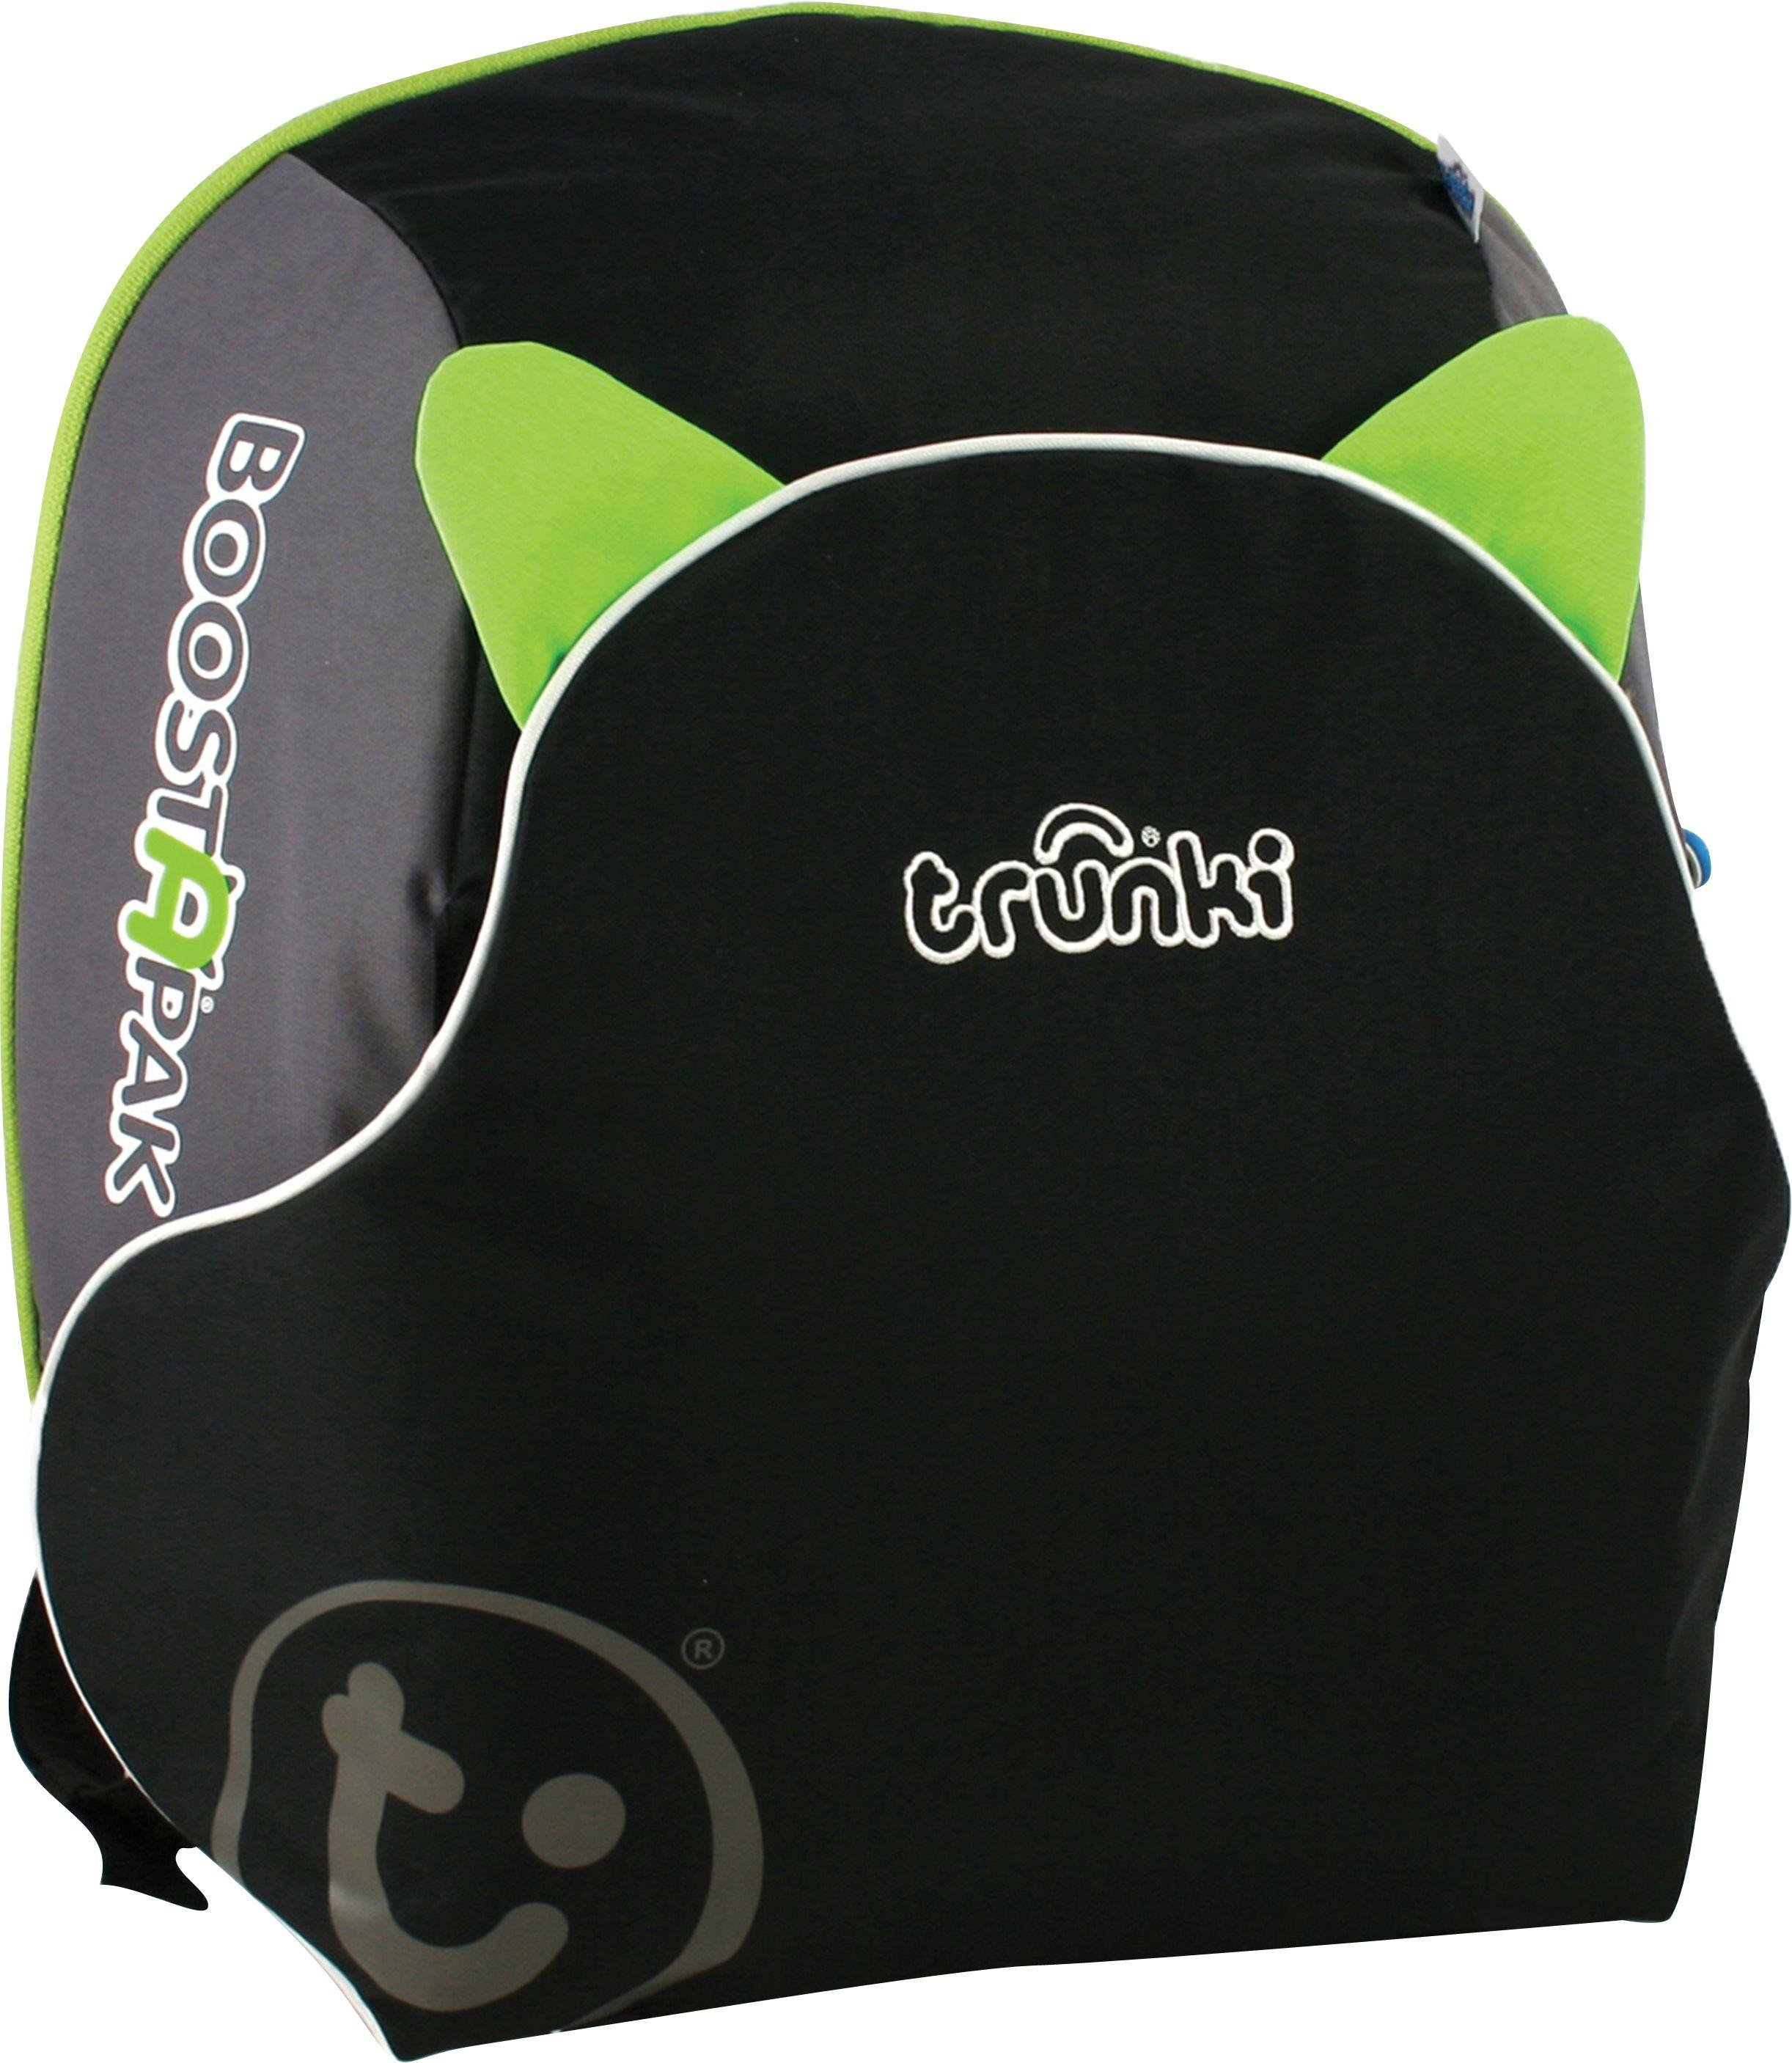 Trunki Boostapak Car Booster Seat - Green